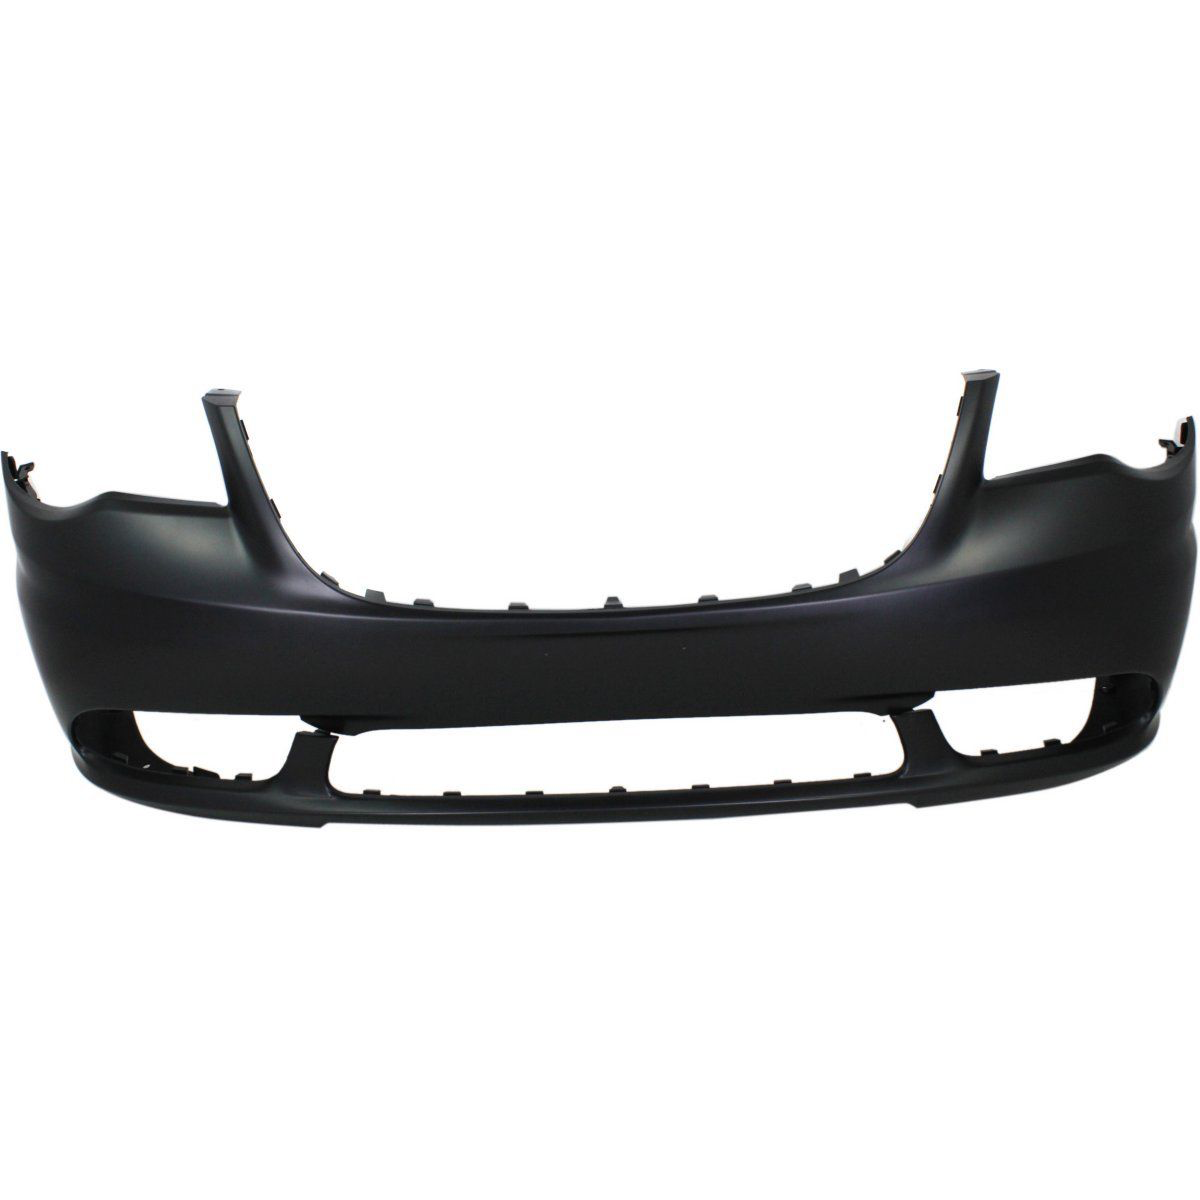 2011-2015 CHRYSLER TOWN & COUNTRY Front Bumper Cover LIMITED  w/o Headlamp Washer Painted to Match